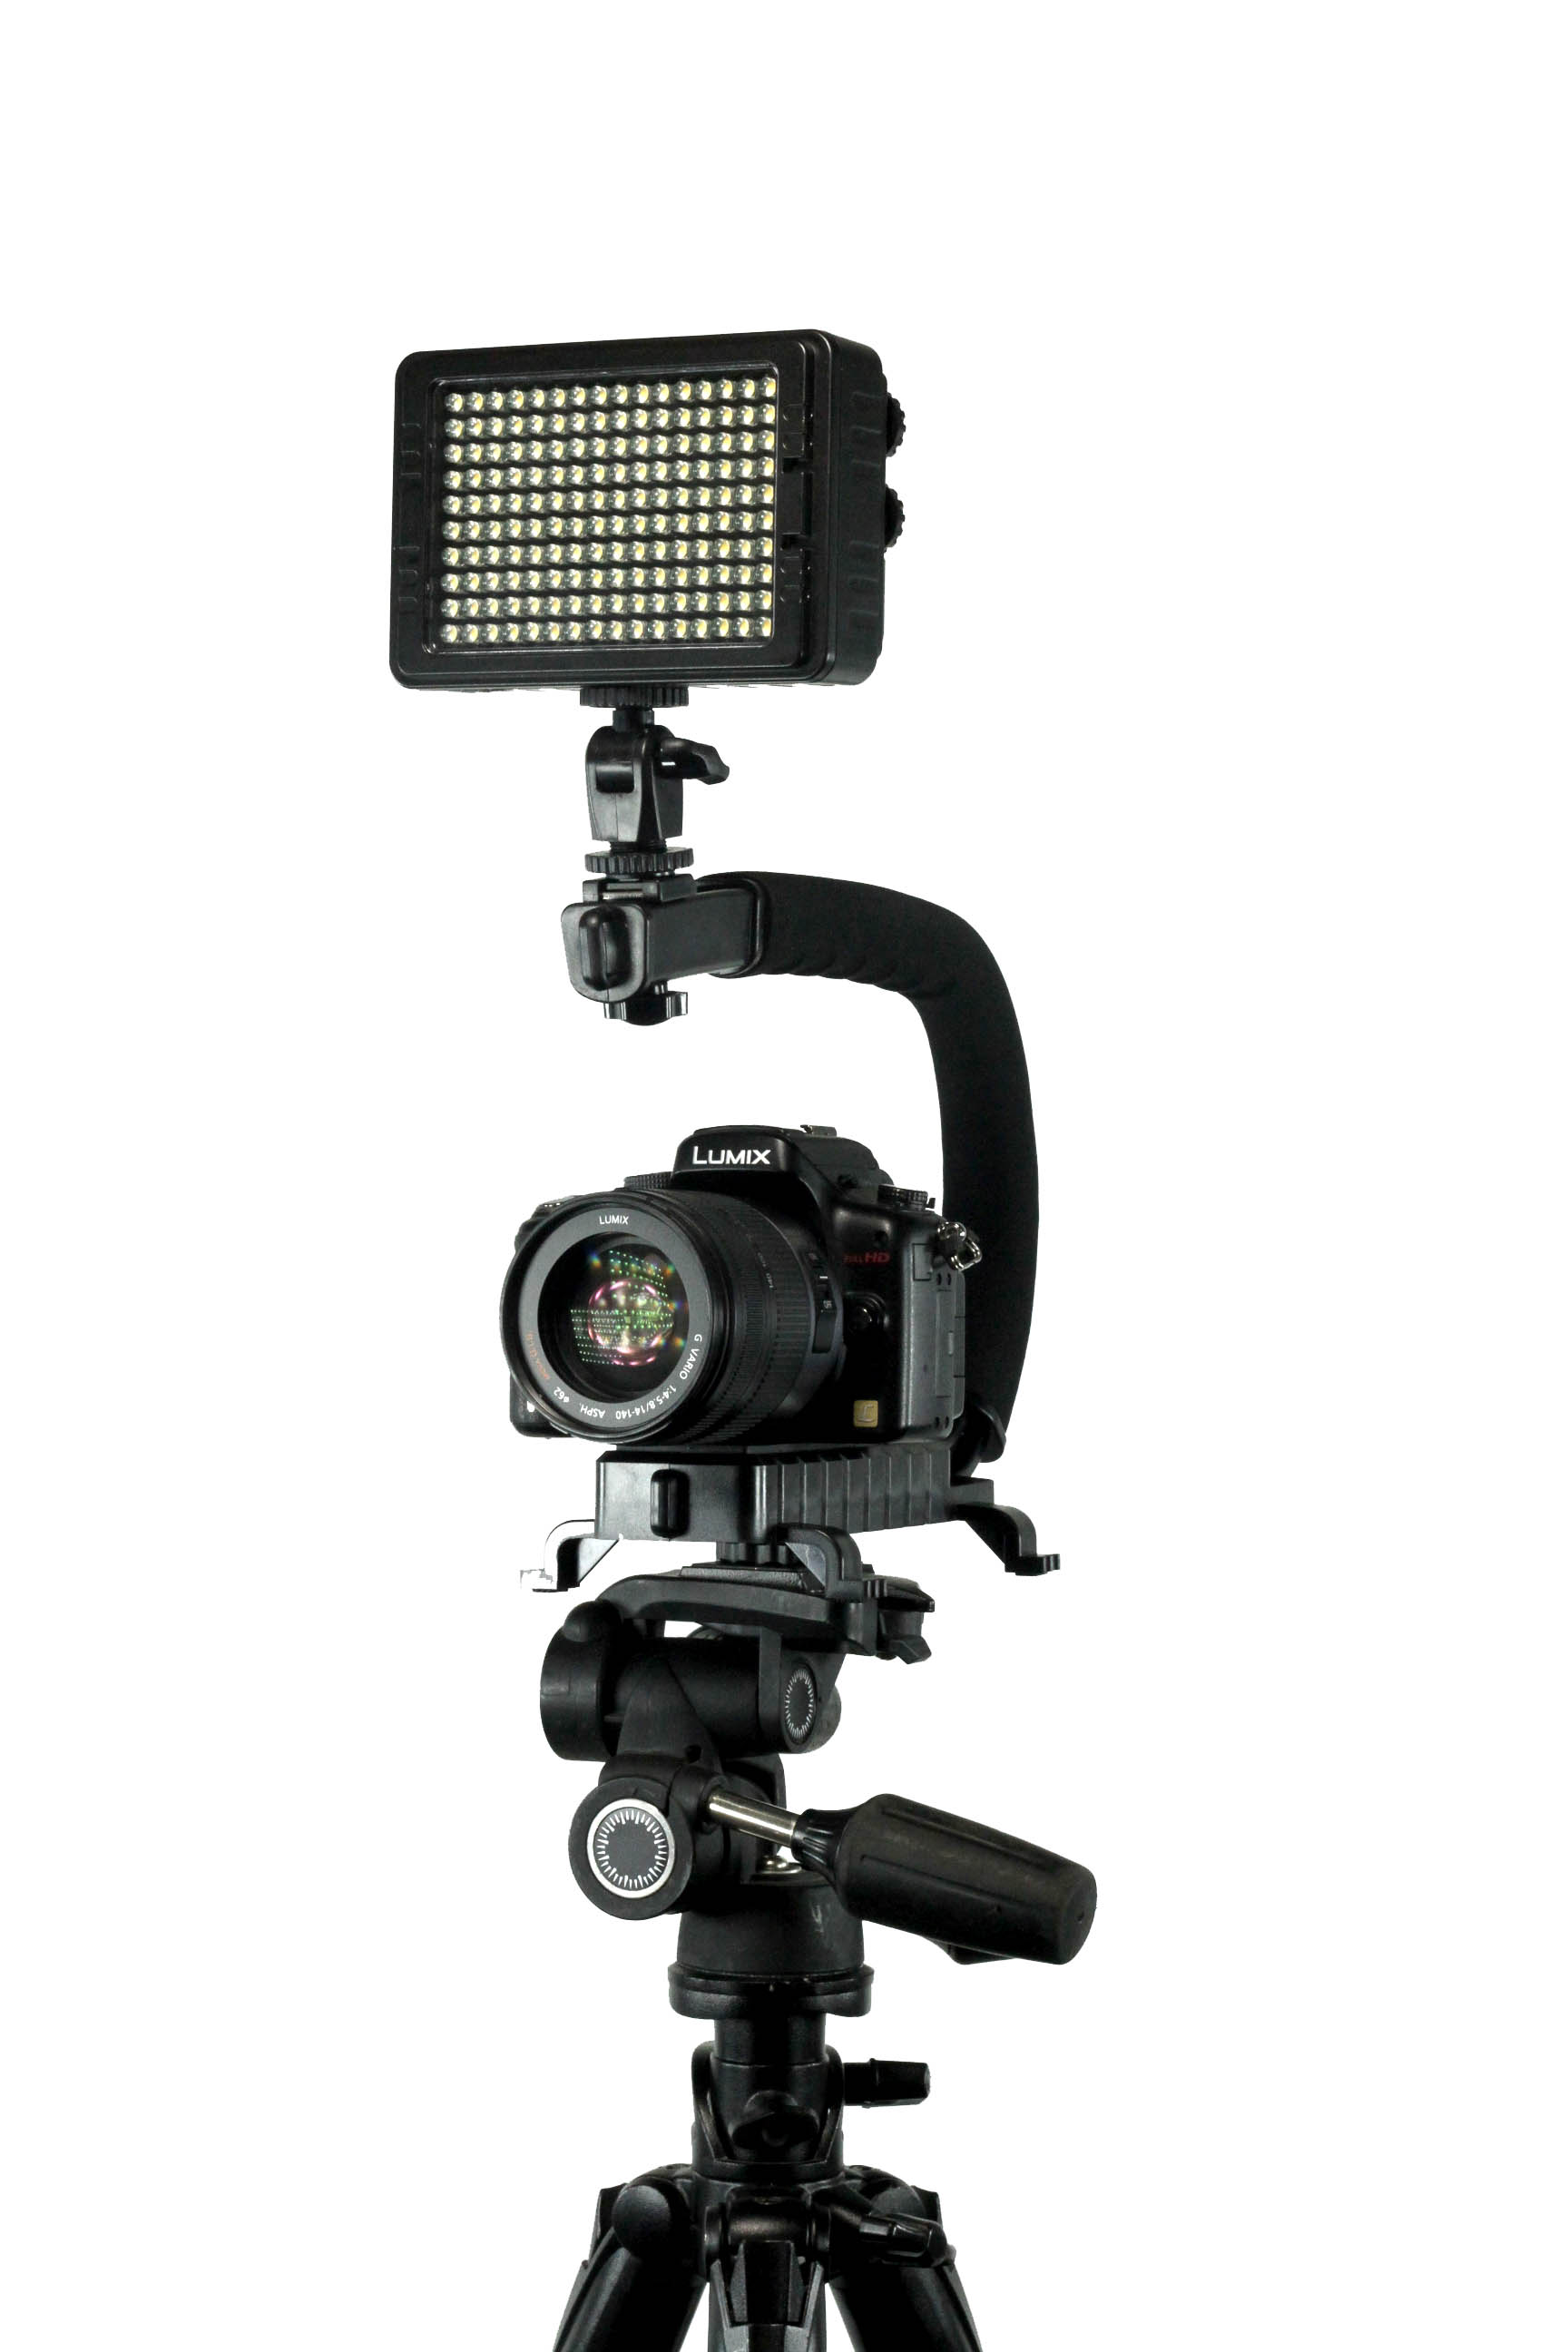 Tripod Mountable - Easily connect the Scorpion Jr. to your favorite Tripod.